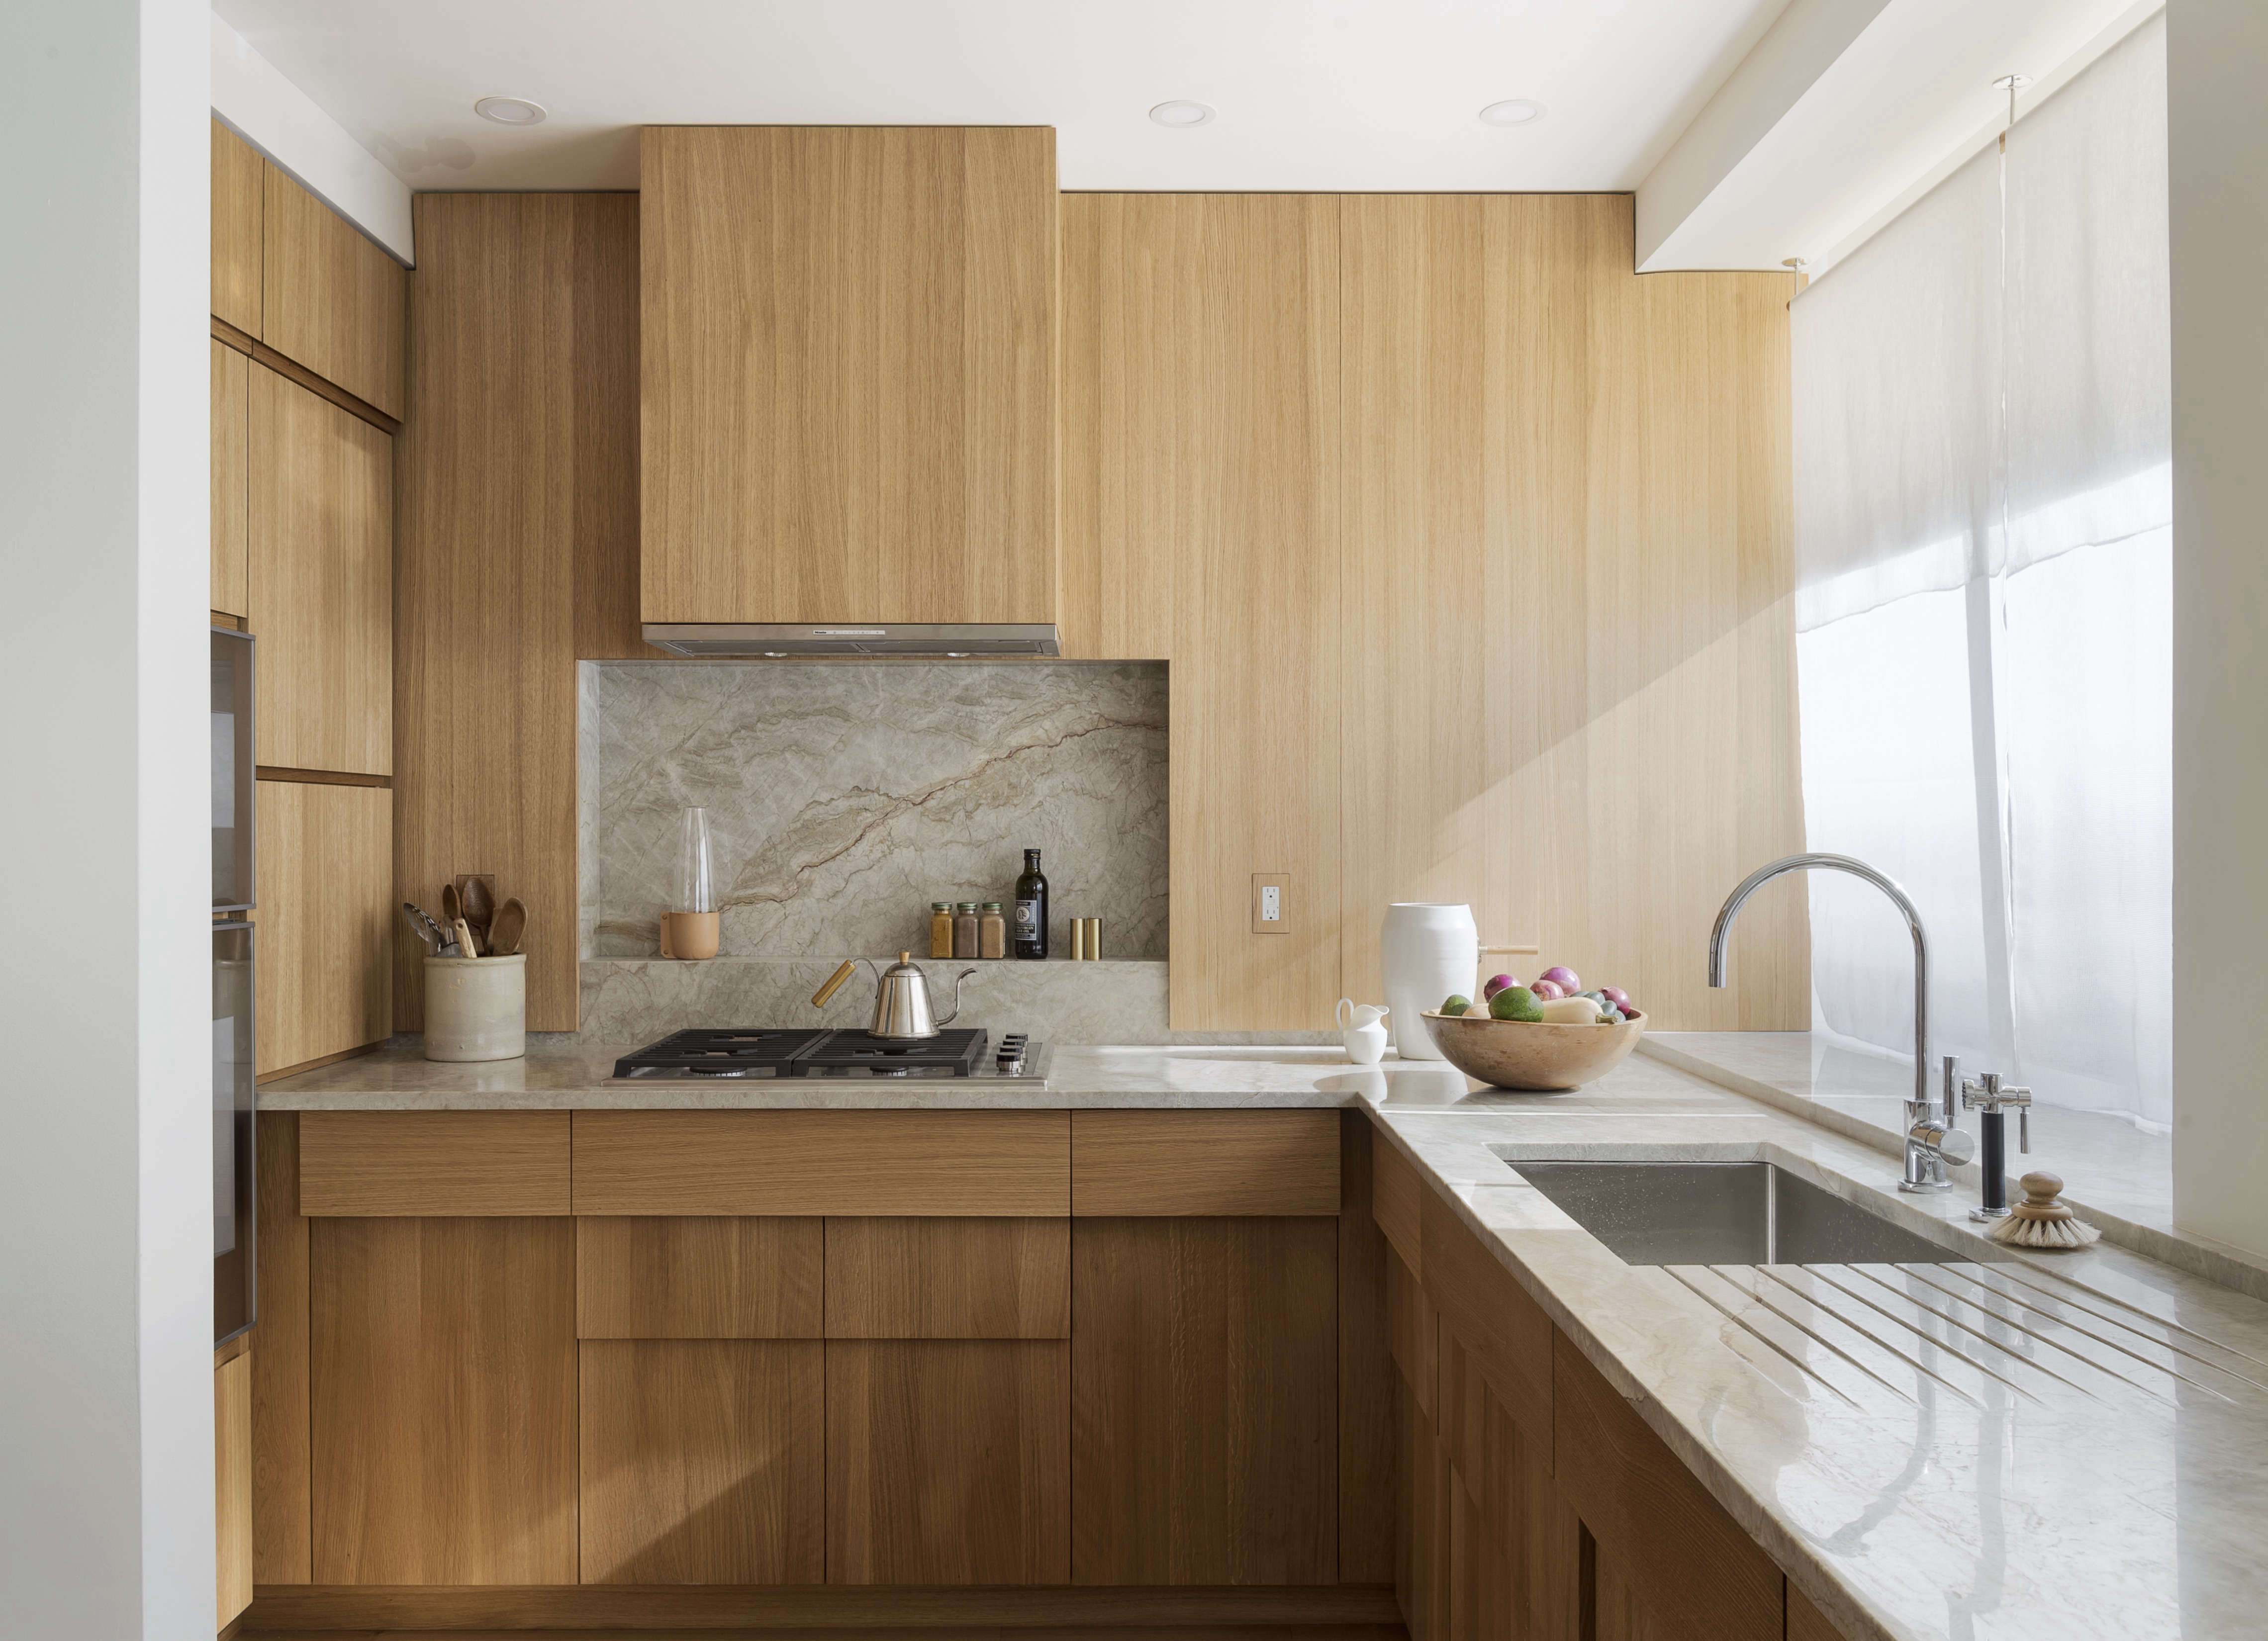 Stepped oak cabinets in a compact kitchen remodel in NYC by Workstead design, Matthew Williams photo